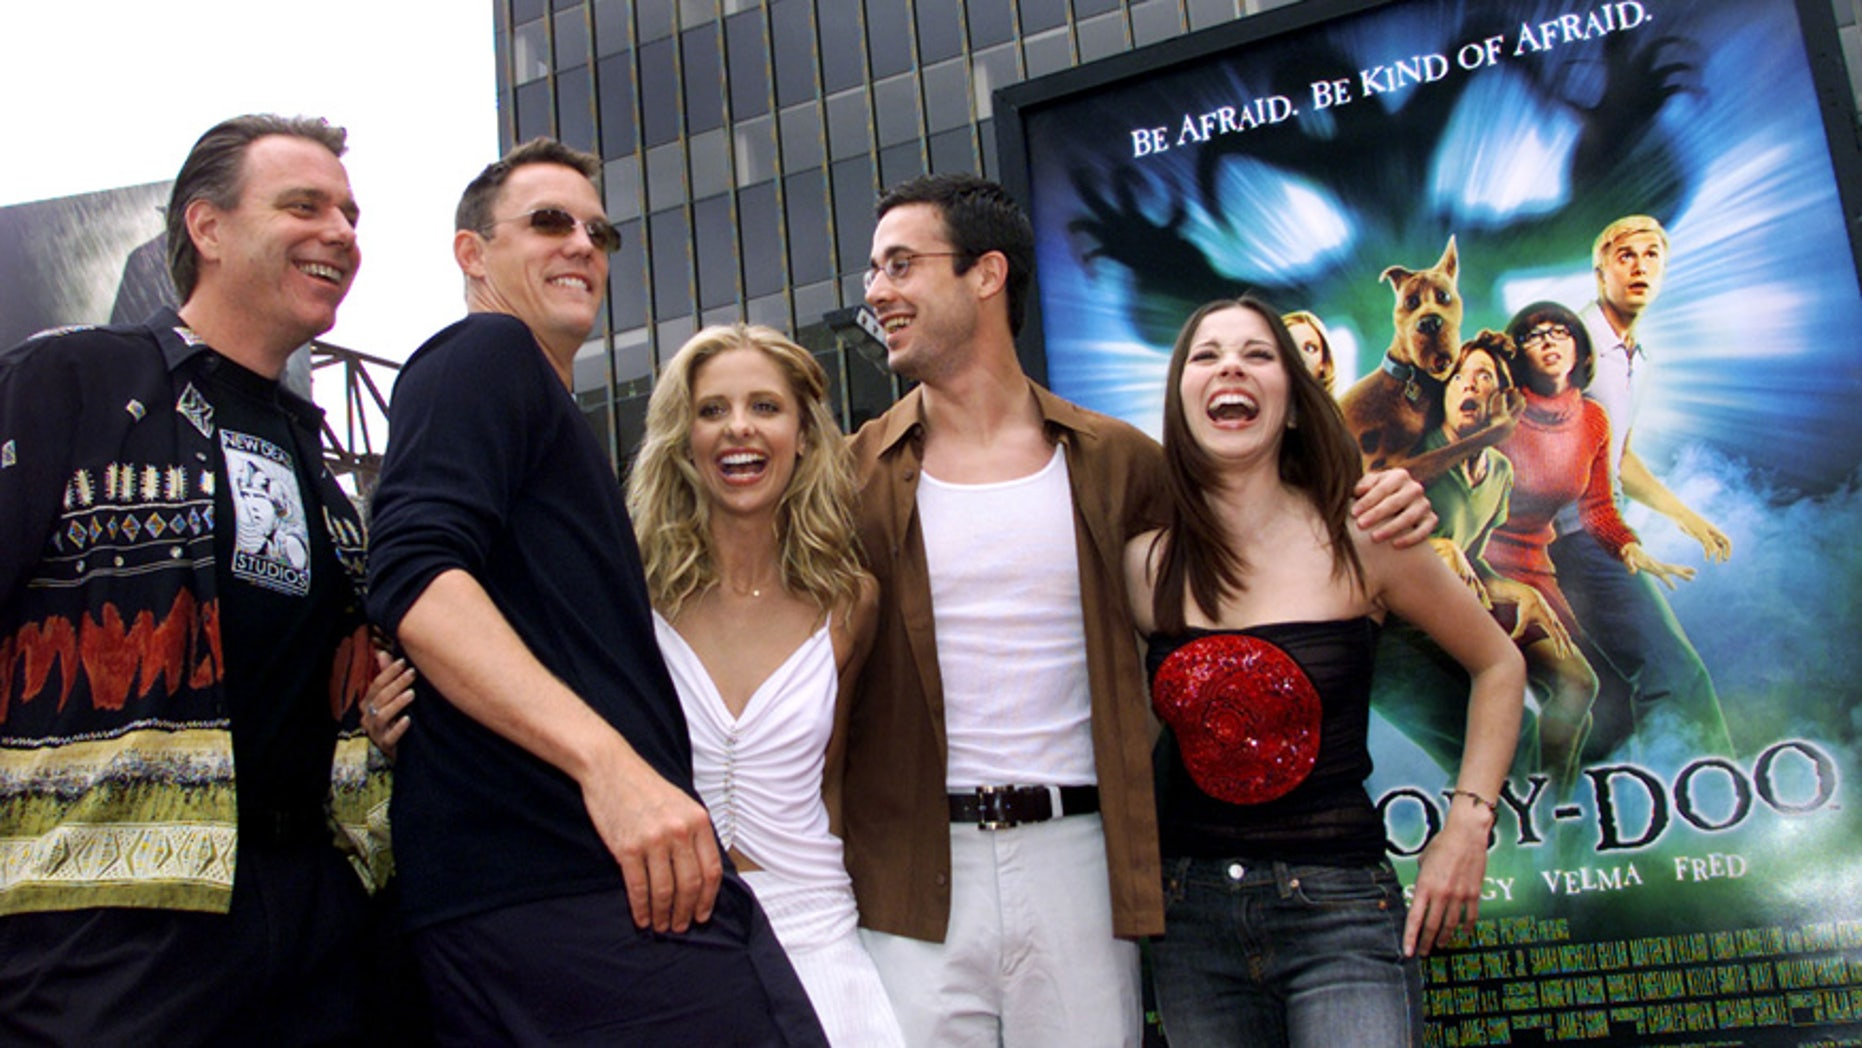 The cast arrives at the world premiere of the film Scooby Doo June 8, 2002 in Hollywood.